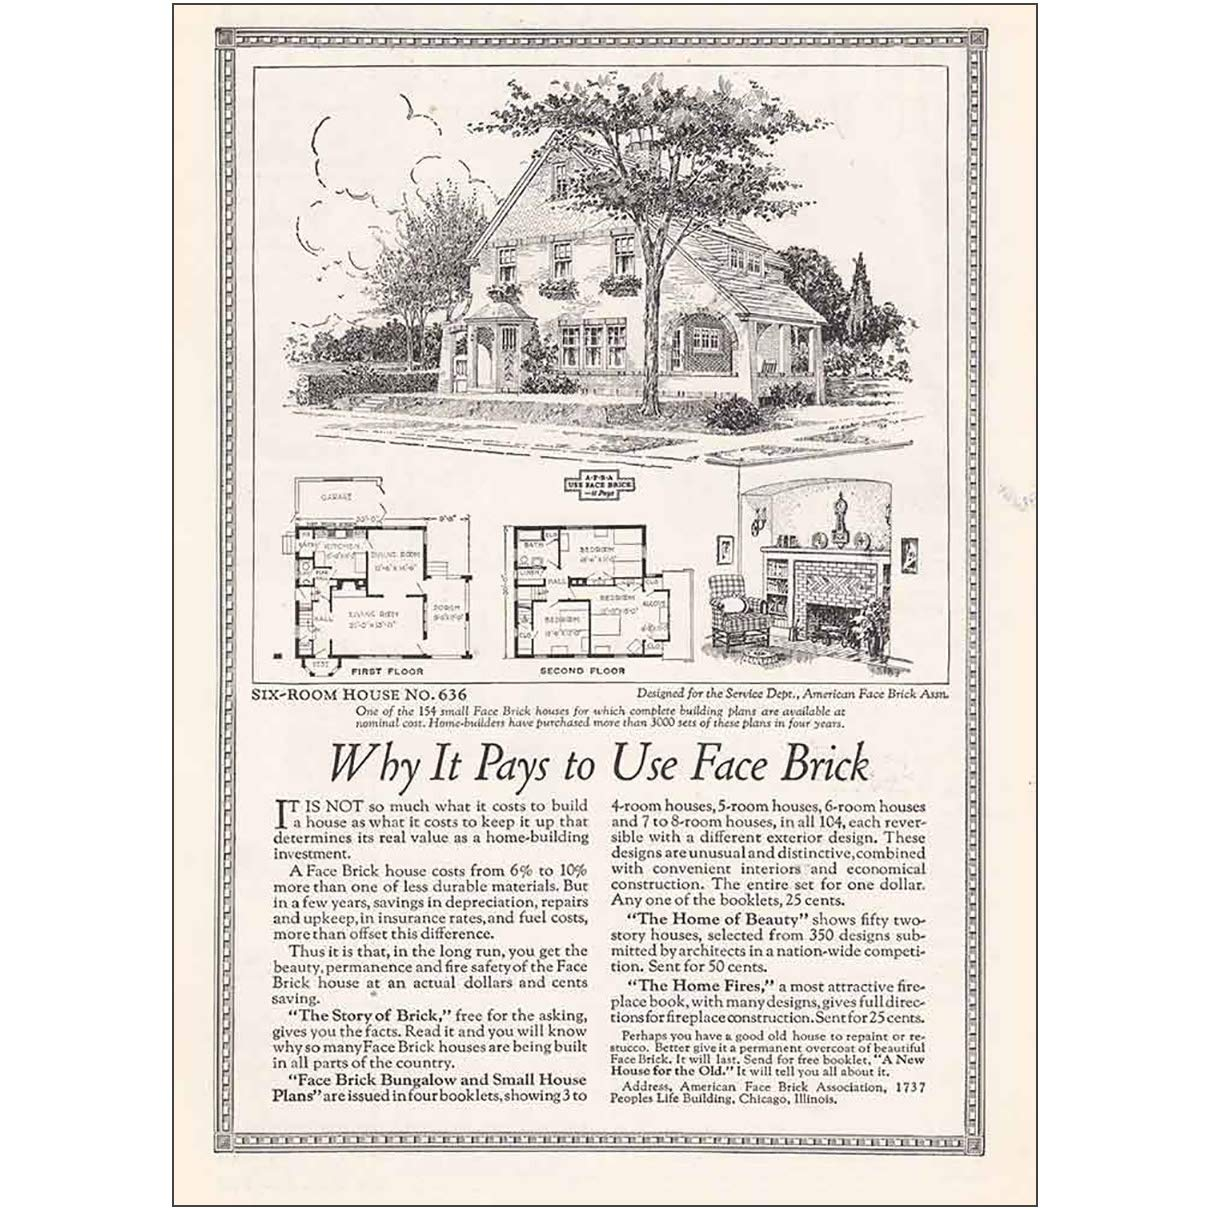 Amazon.com: RelicPaper 1925 American Face Brick: Six Room ... on large room house plans, single room house plans, sitting room house plans, hidden room house plans, very basic house plans, great room house plans,